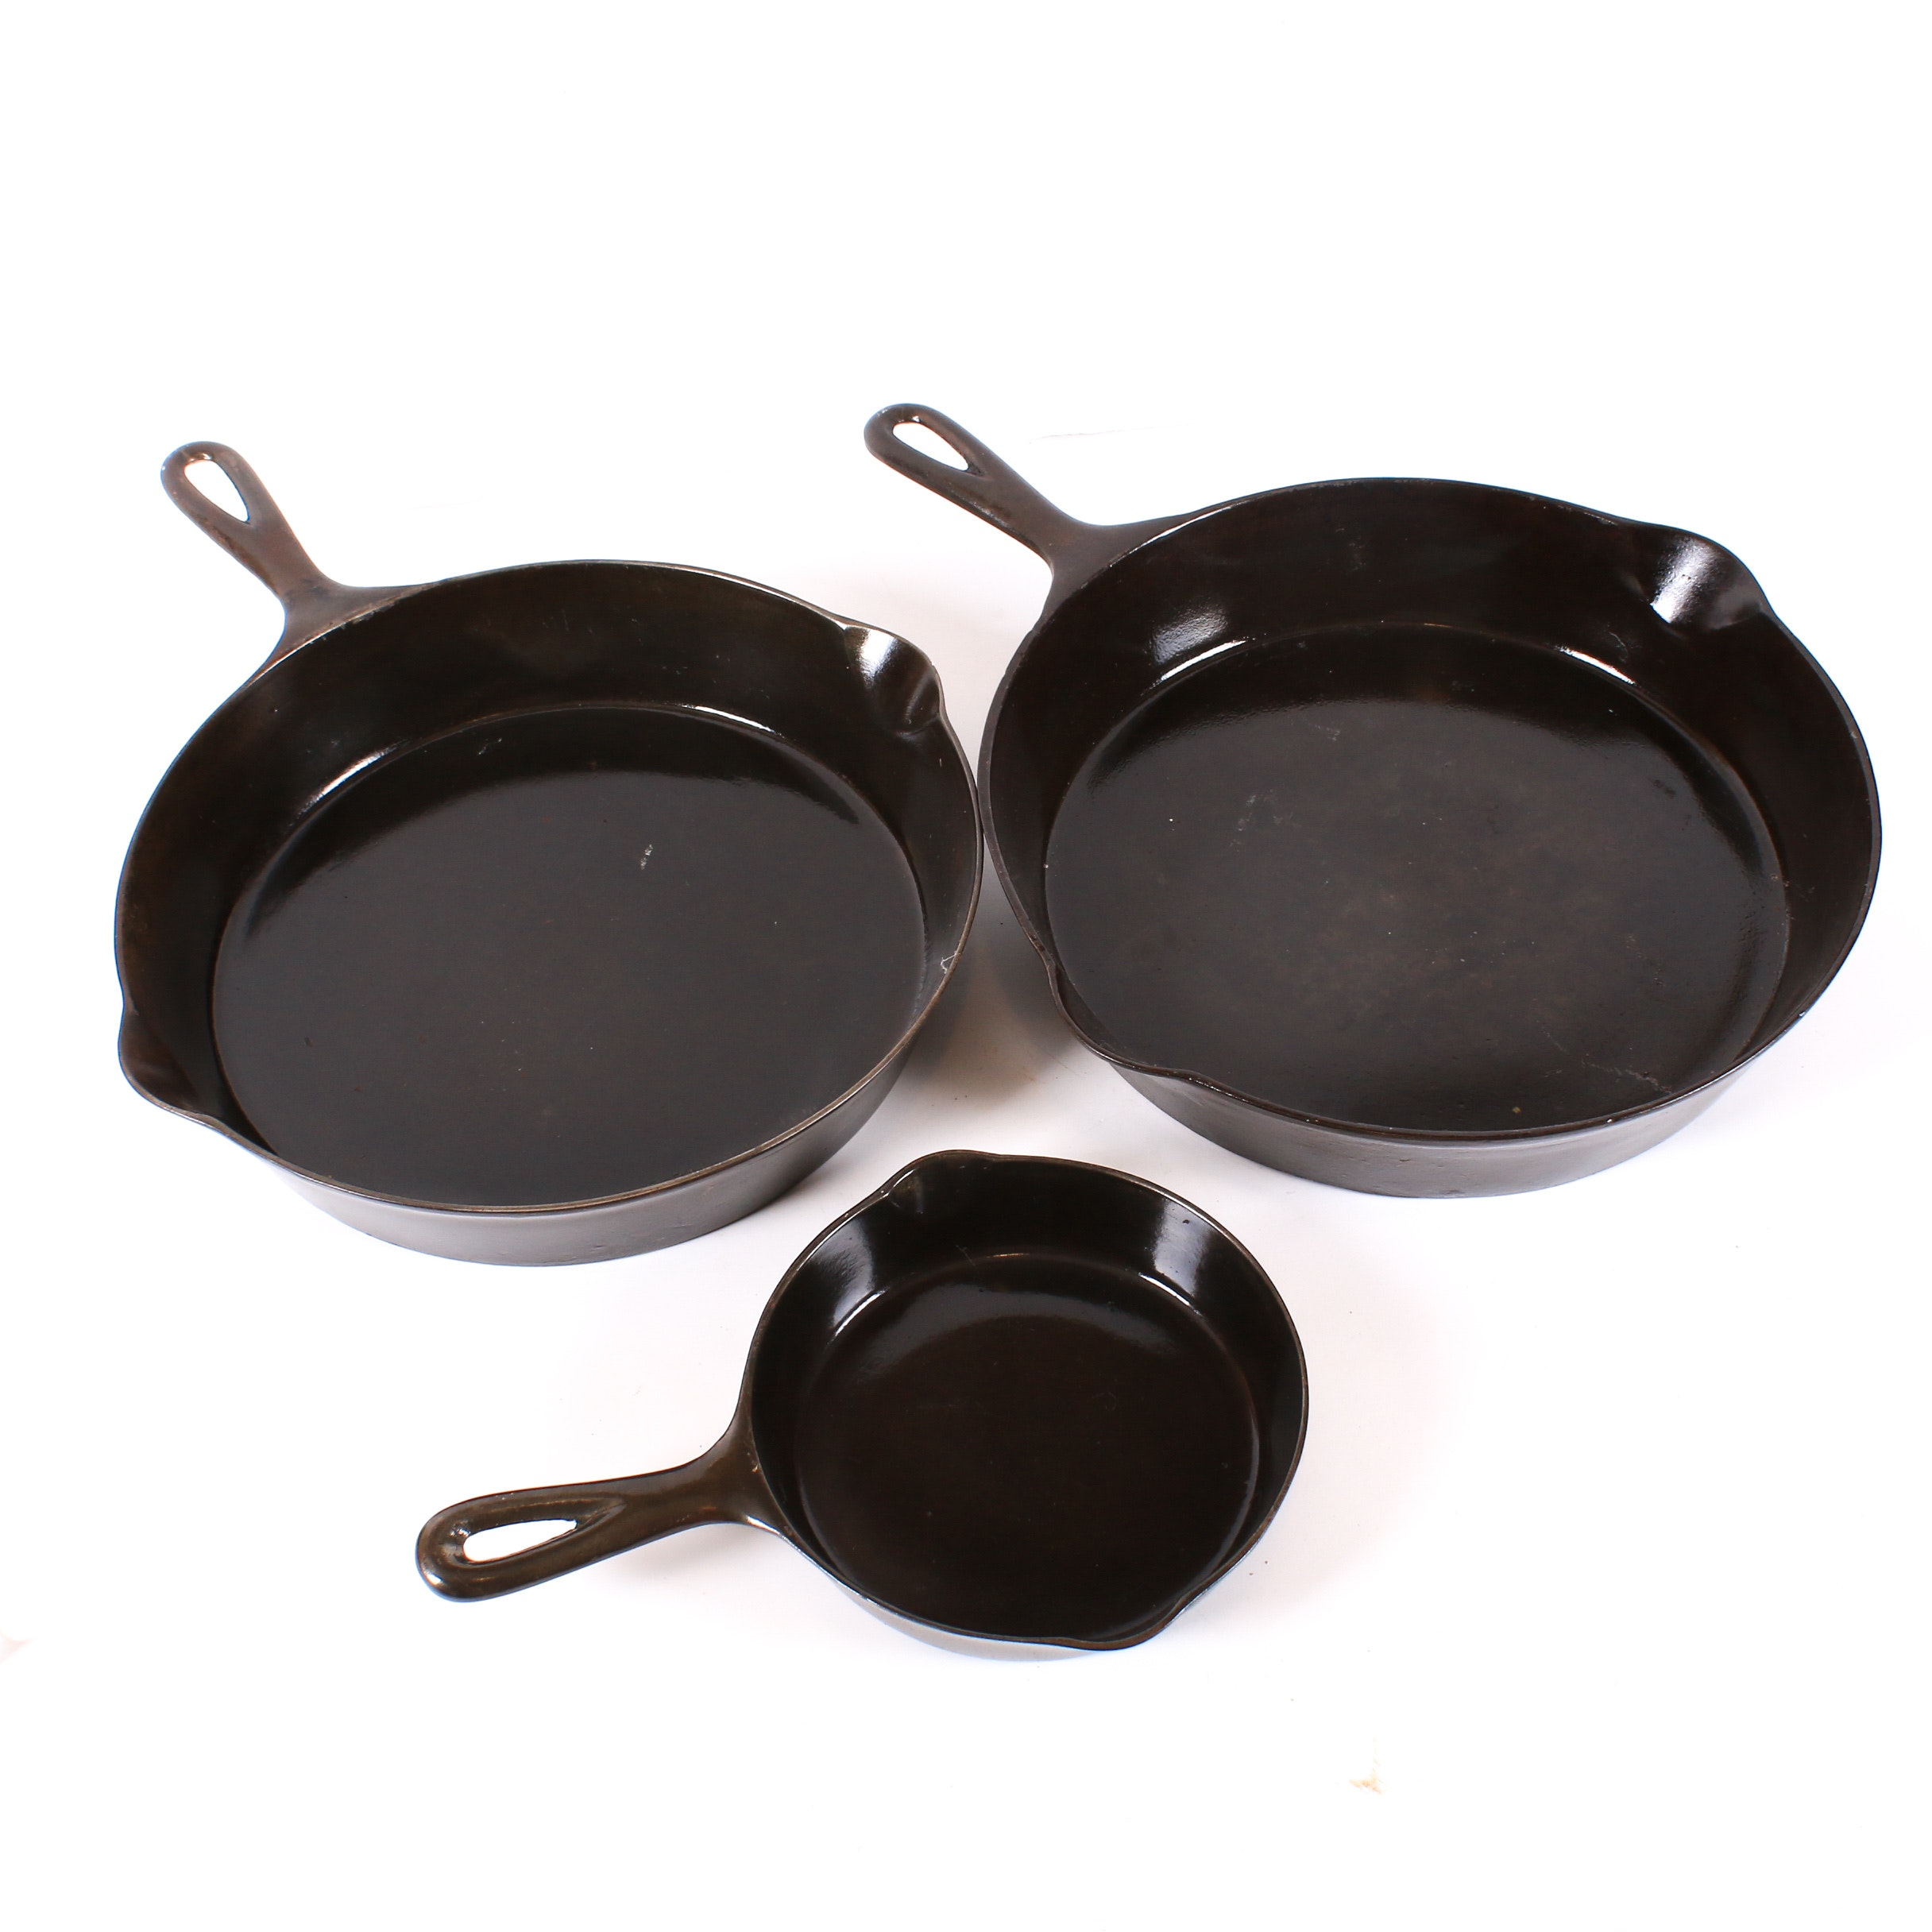 Wapak Cast Iron Cookware, 1903 - 1926